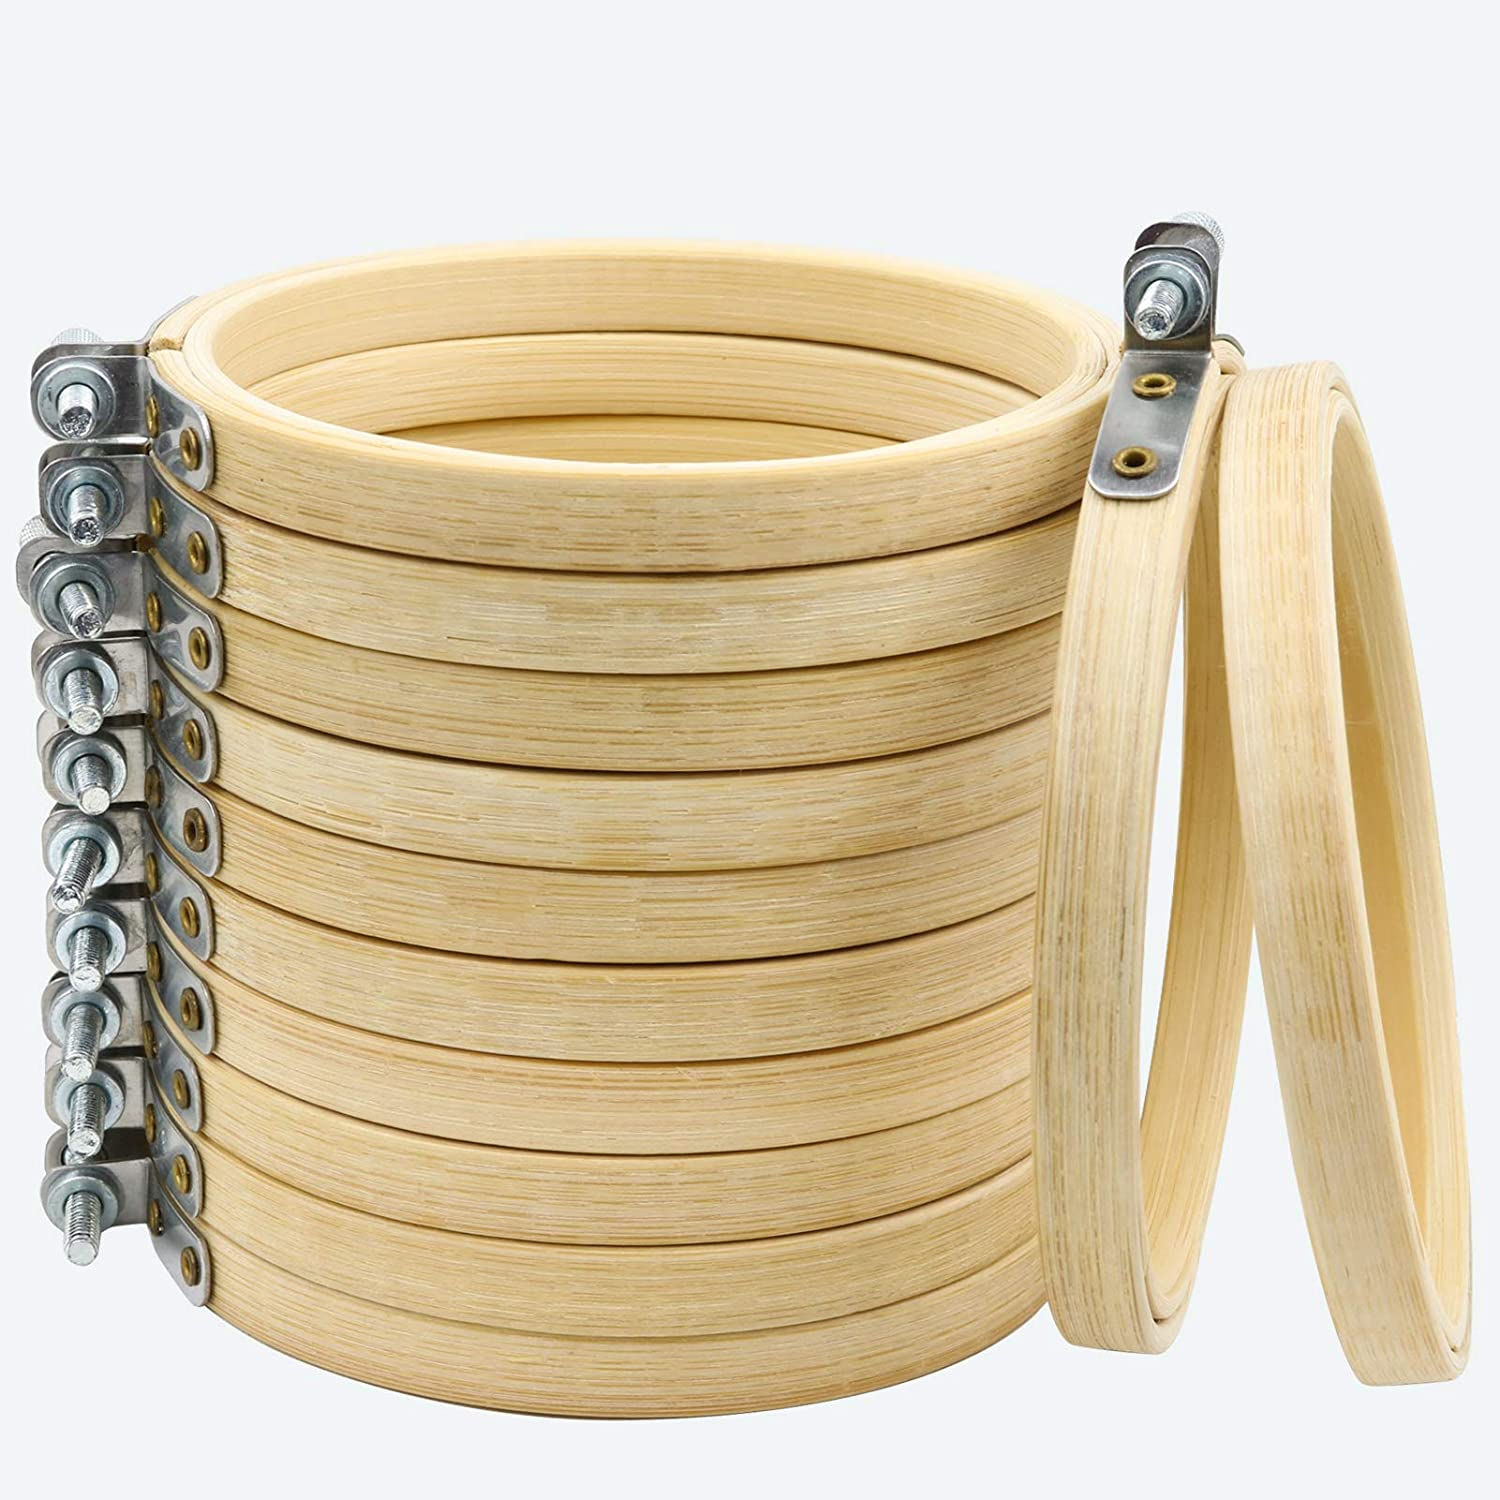 Similane 12 Pieces 4 Inch Embroidery Detroit Mall Sale special price S Cross Bamboo Circle Hoops